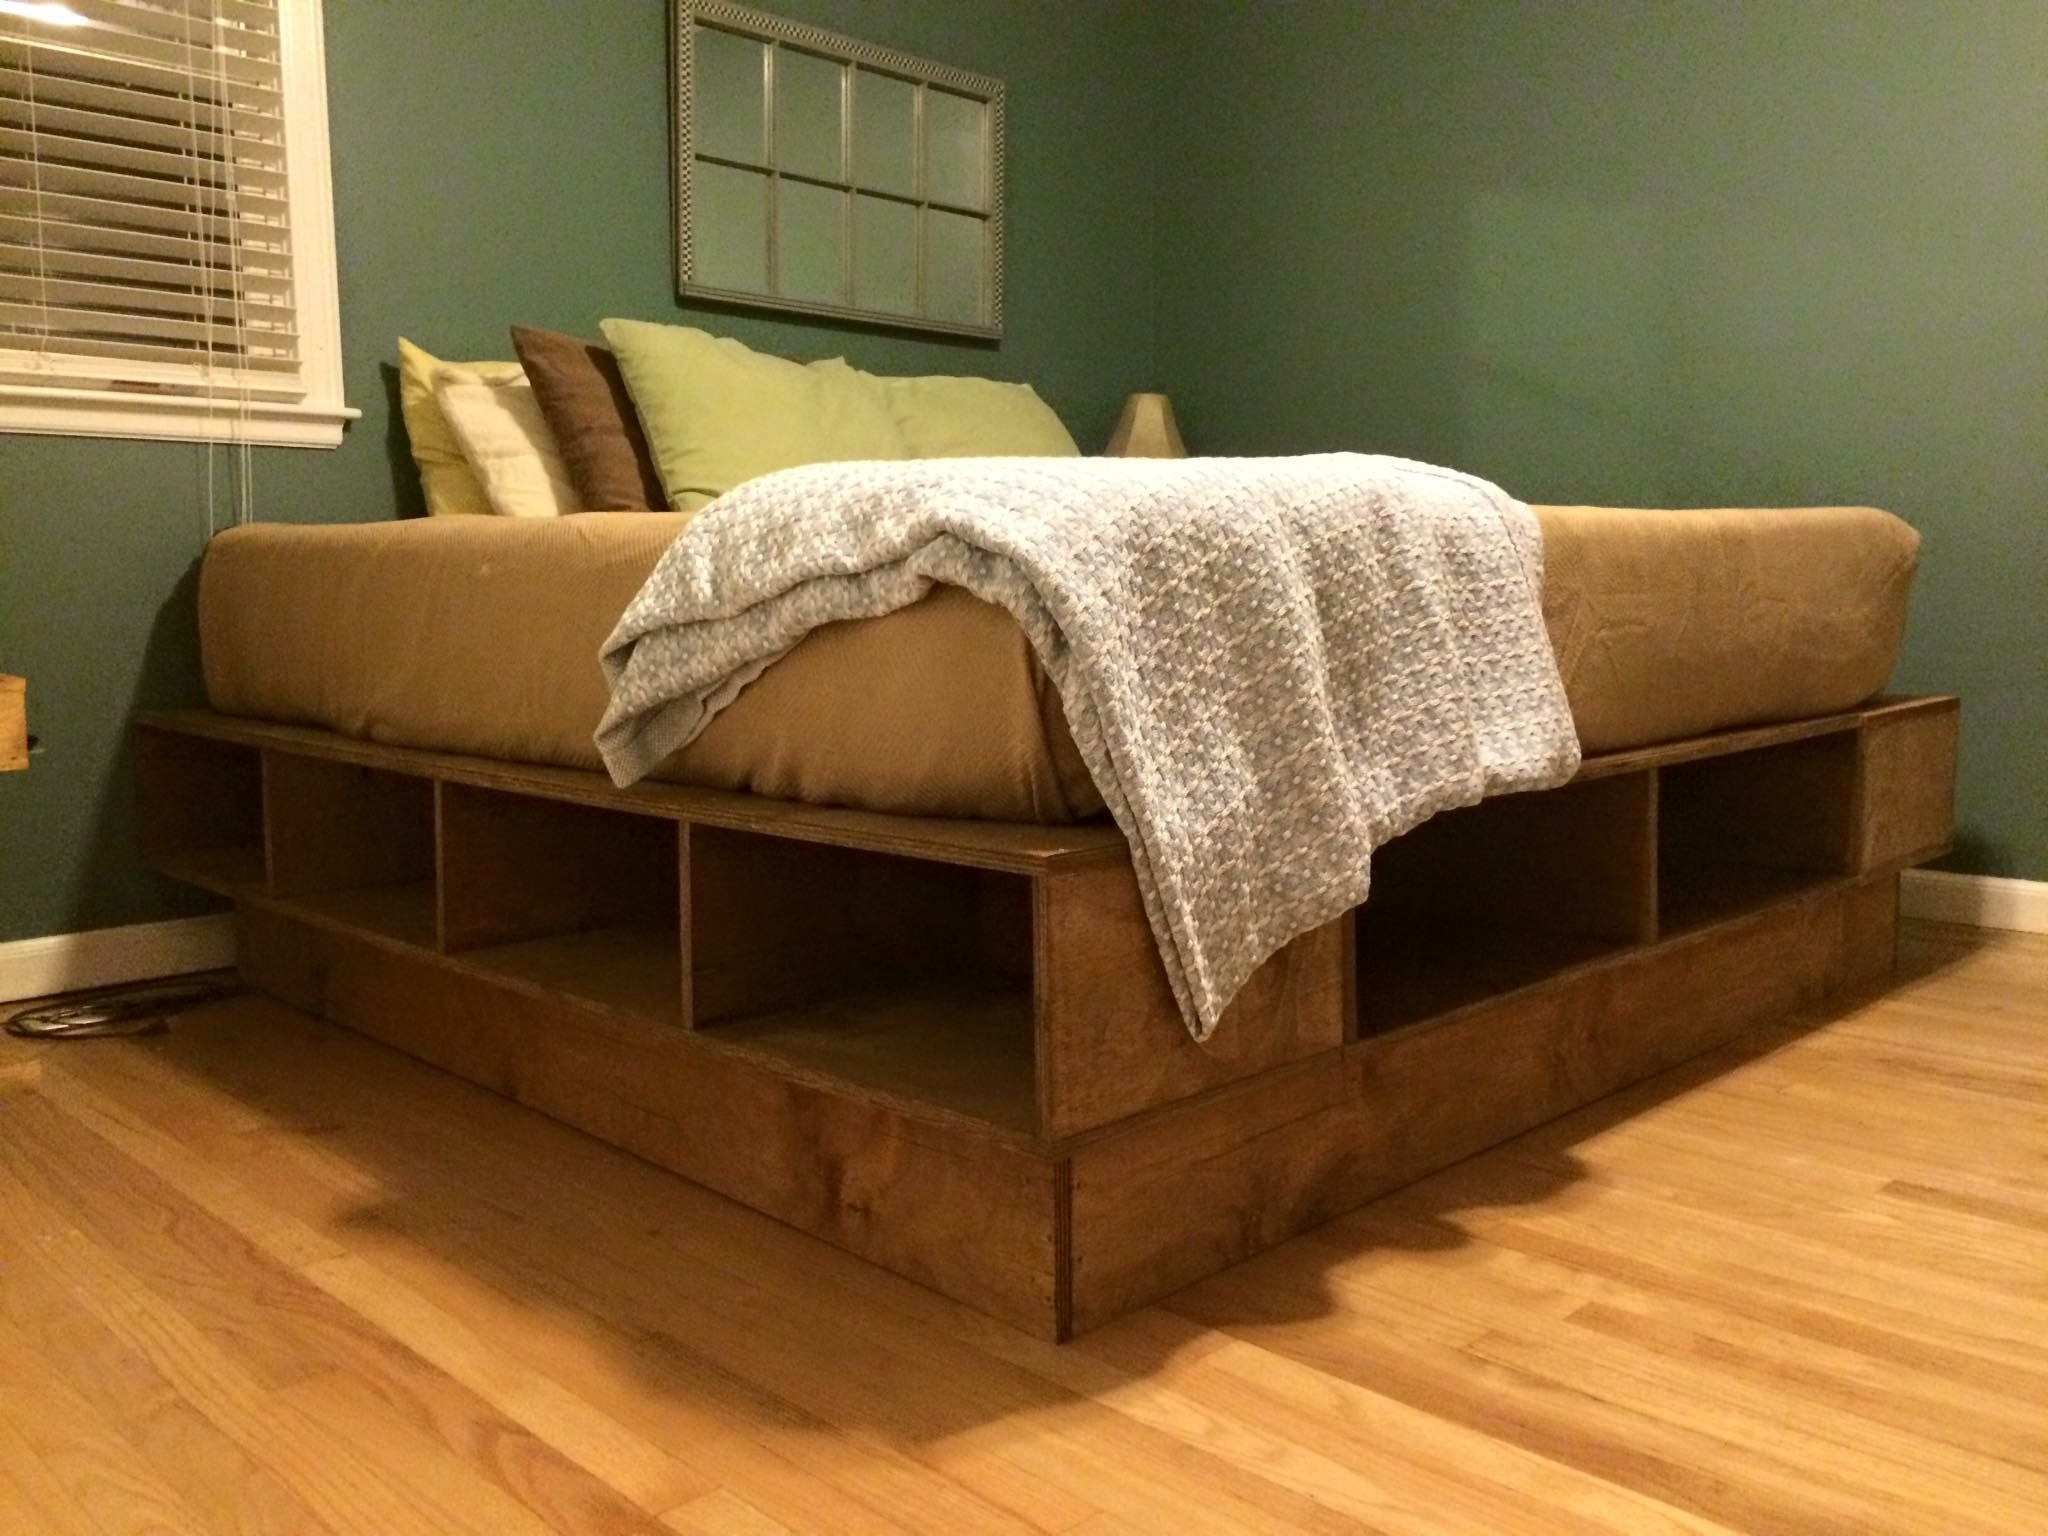 Platform Bed King Size Simple Straight Cuts Used The